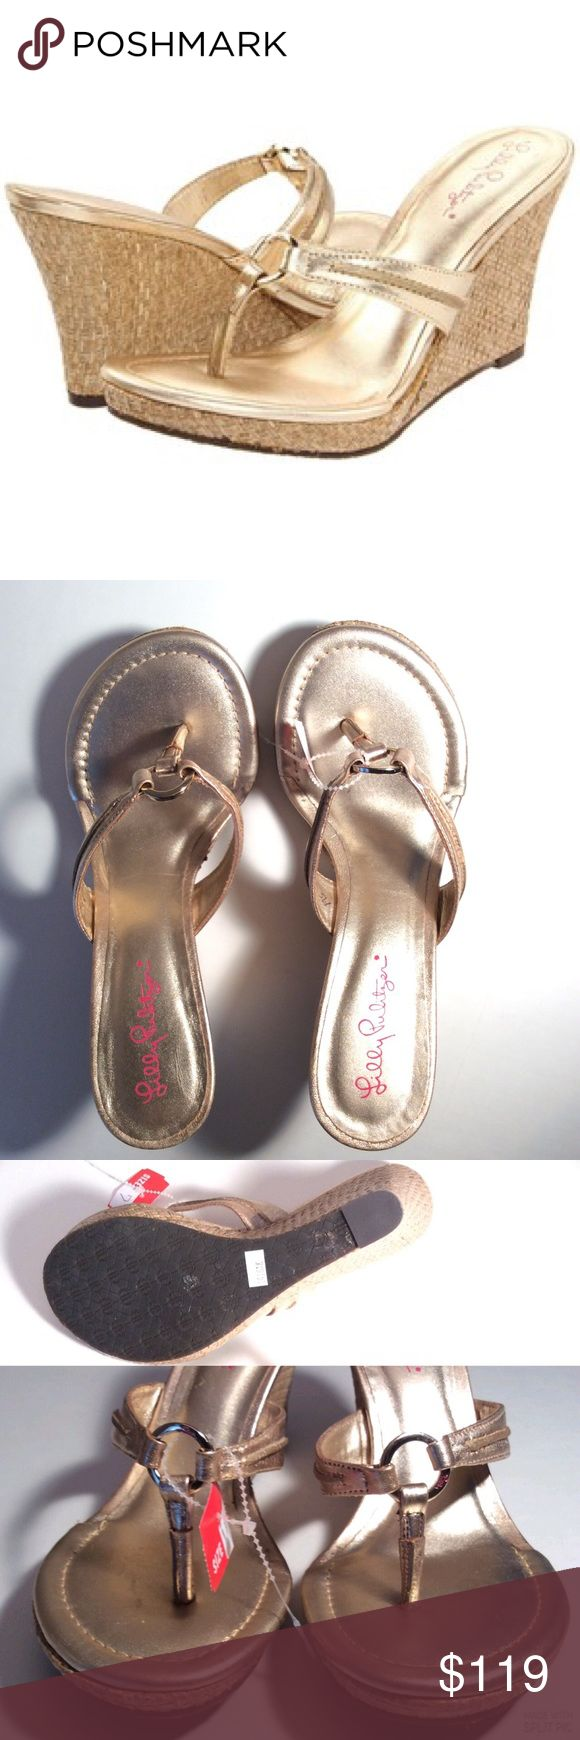 "LILLY PULITZER💎McKIM WEDGE SANDALS💎NEW W/TAGS LILLY PULITZER McKim High Wedge Gold Metallic Leather Sandals. Size 7. Purchased locally. Non-slip soles, 3.5"" high wedge. No box, tag attached with no price. First photo is professional. You will love these paired with capris, skinny jeans, skirts/dresses. 3 ways to save: BOGO $10 or more, & FREE SHIP $50 or more. Many items $10 or less. See closet for details. Bundle discounts apply! Any questions, please ask. Thanks for stopping by! XO Amy…"